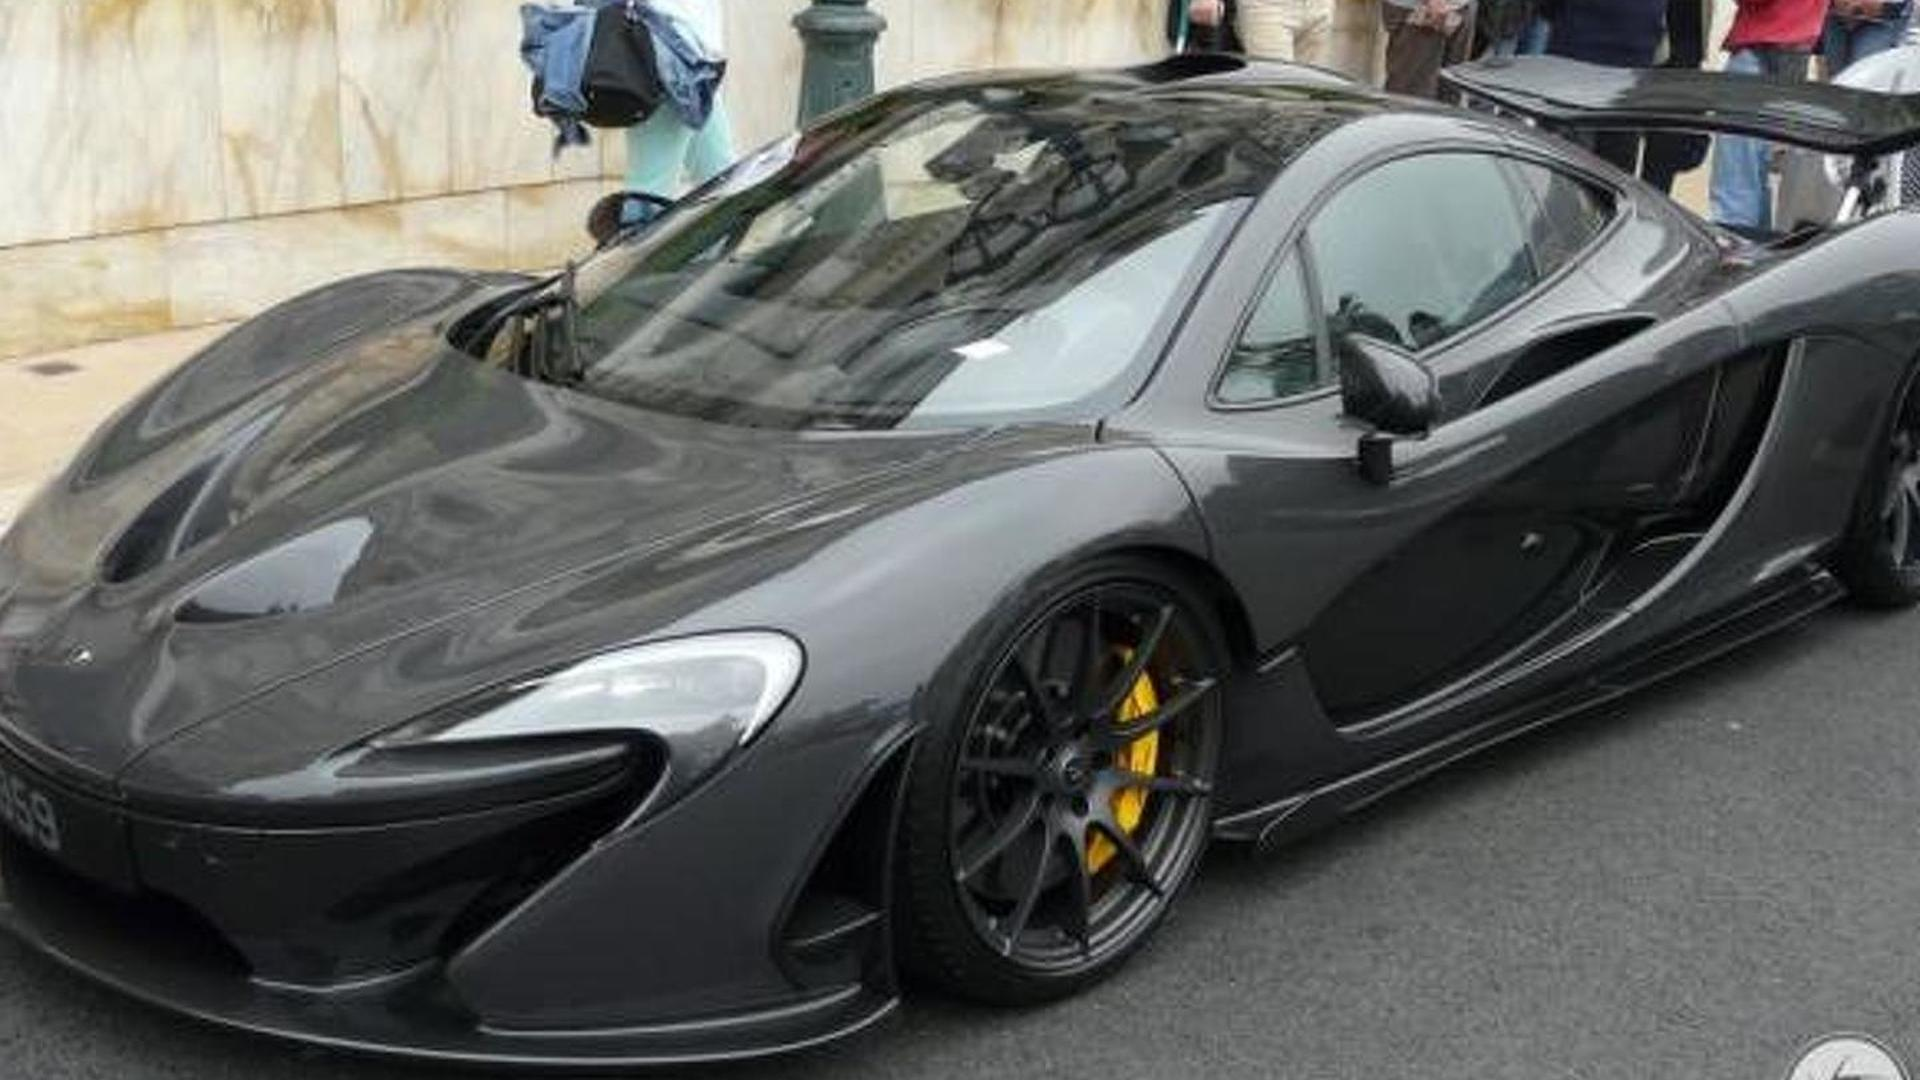 jenson button's mclaren p1 spotted in monaco